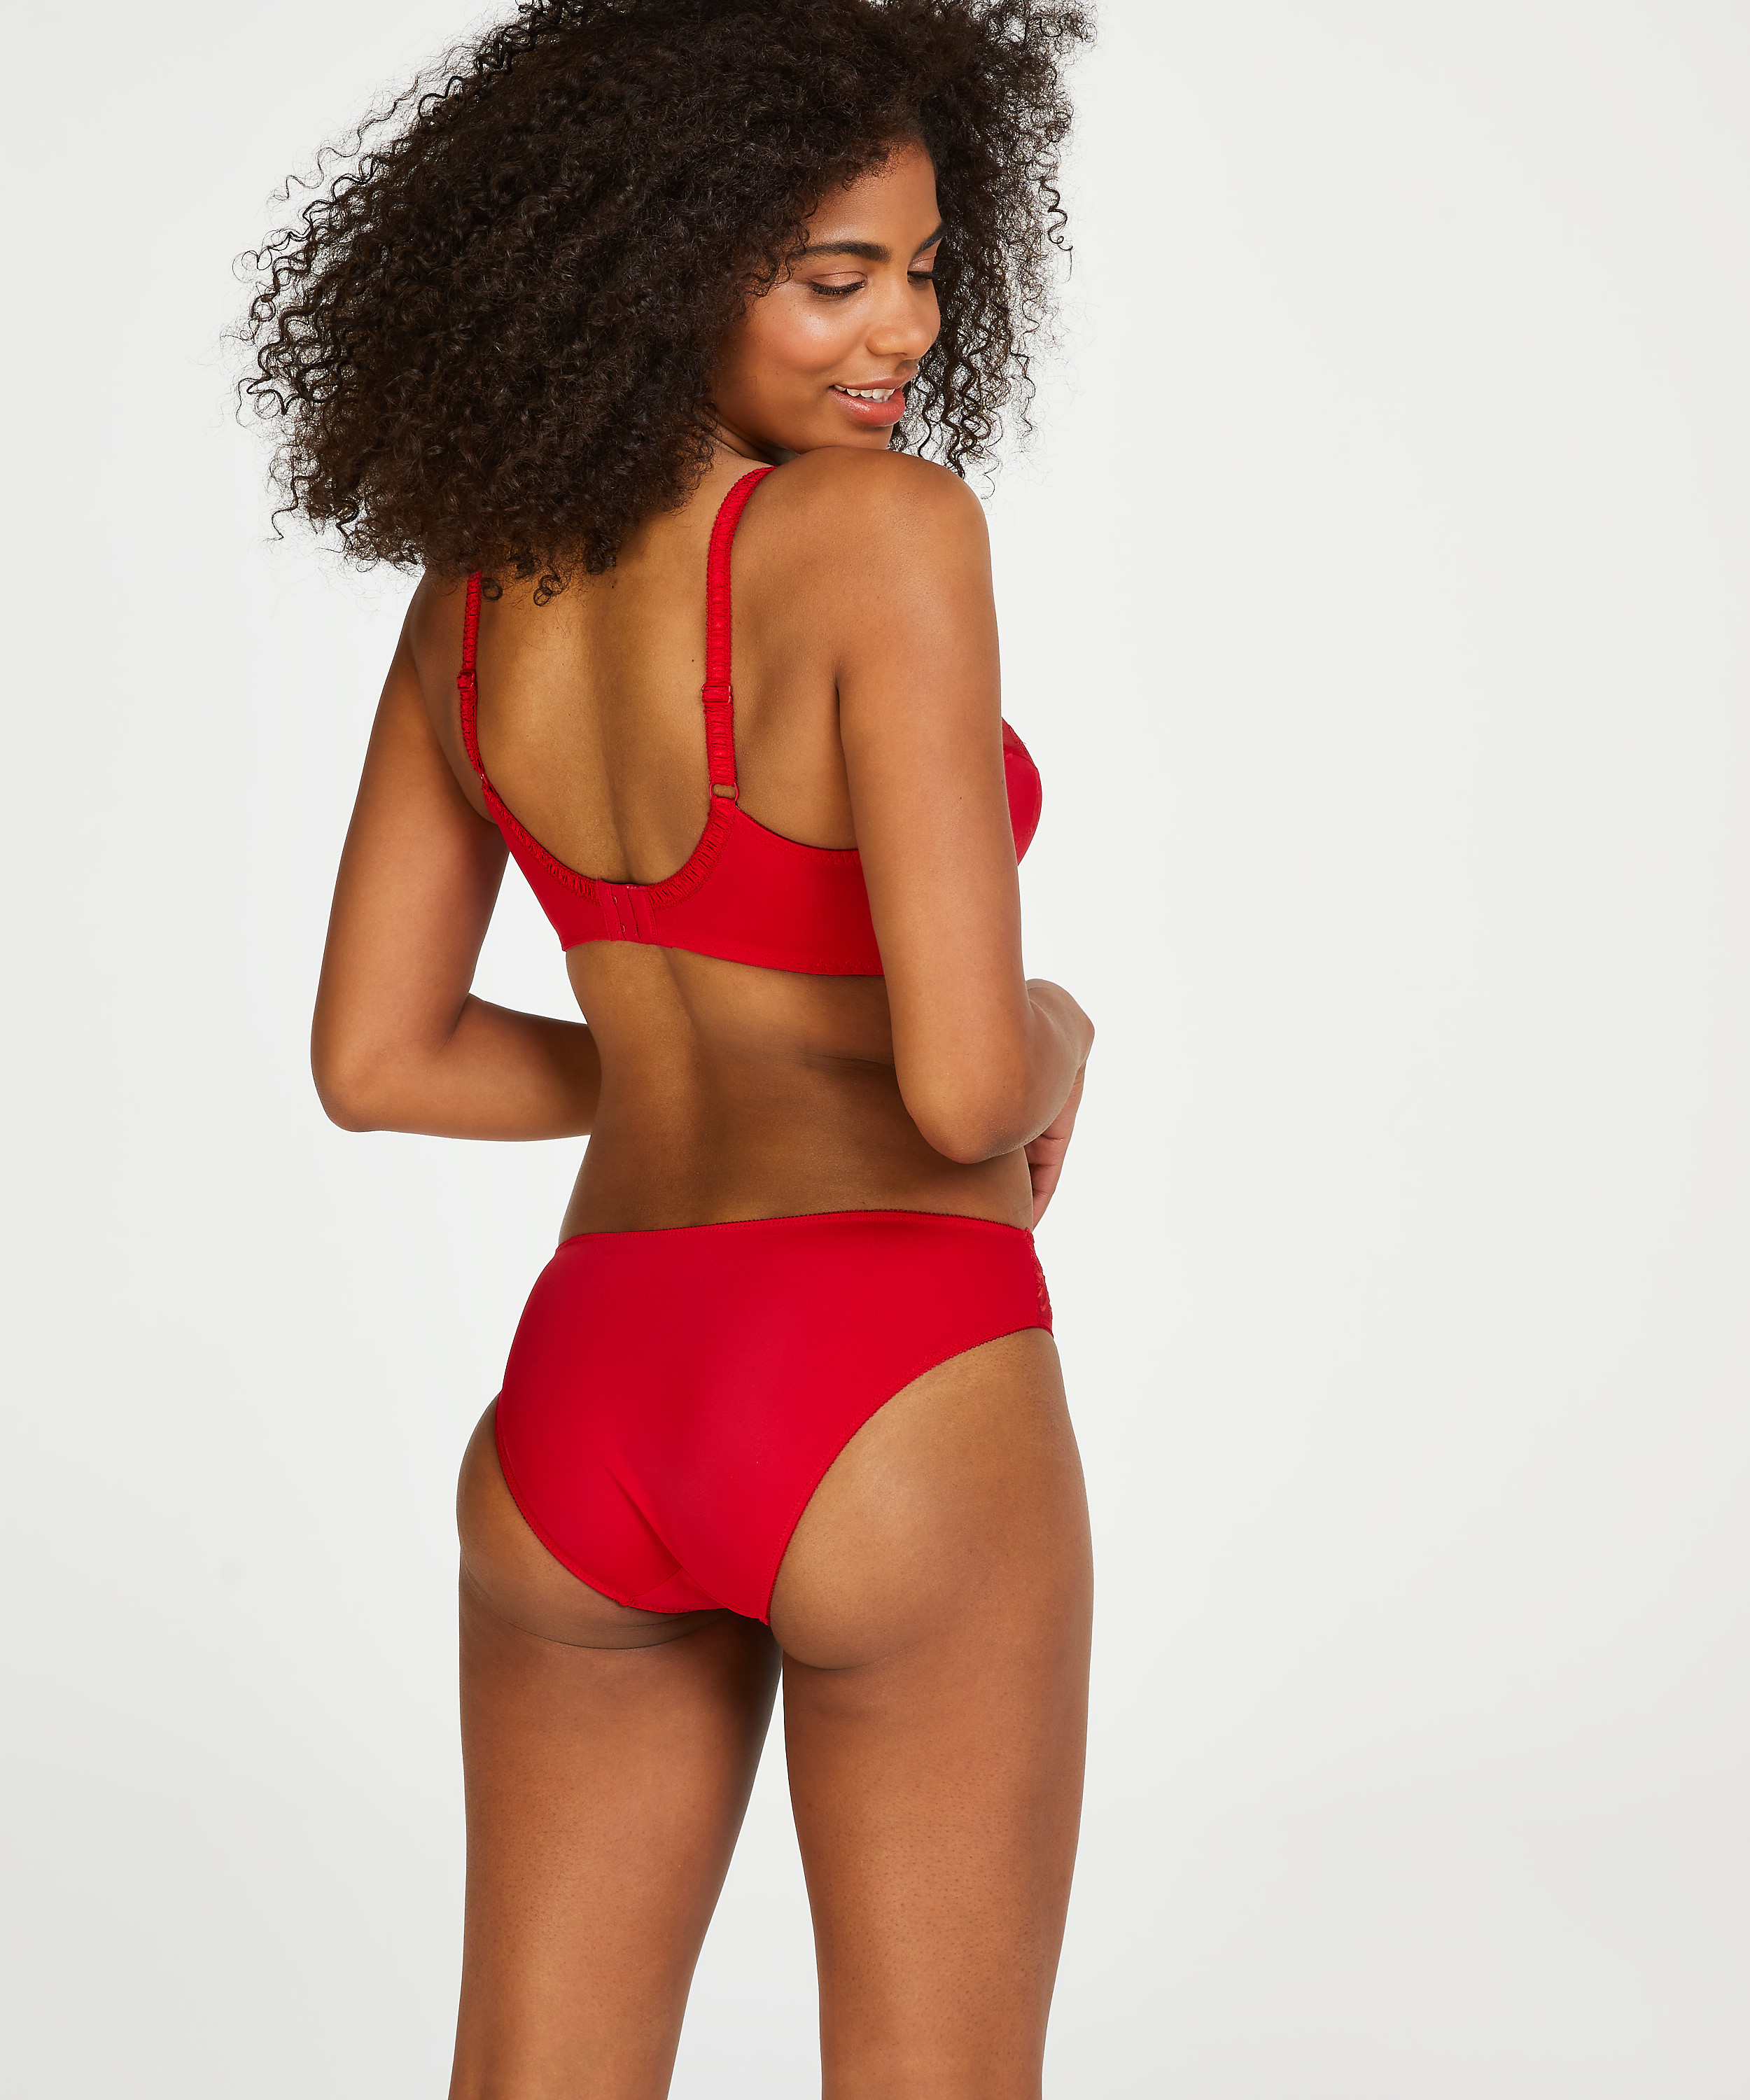 Diva knickers, Red, main